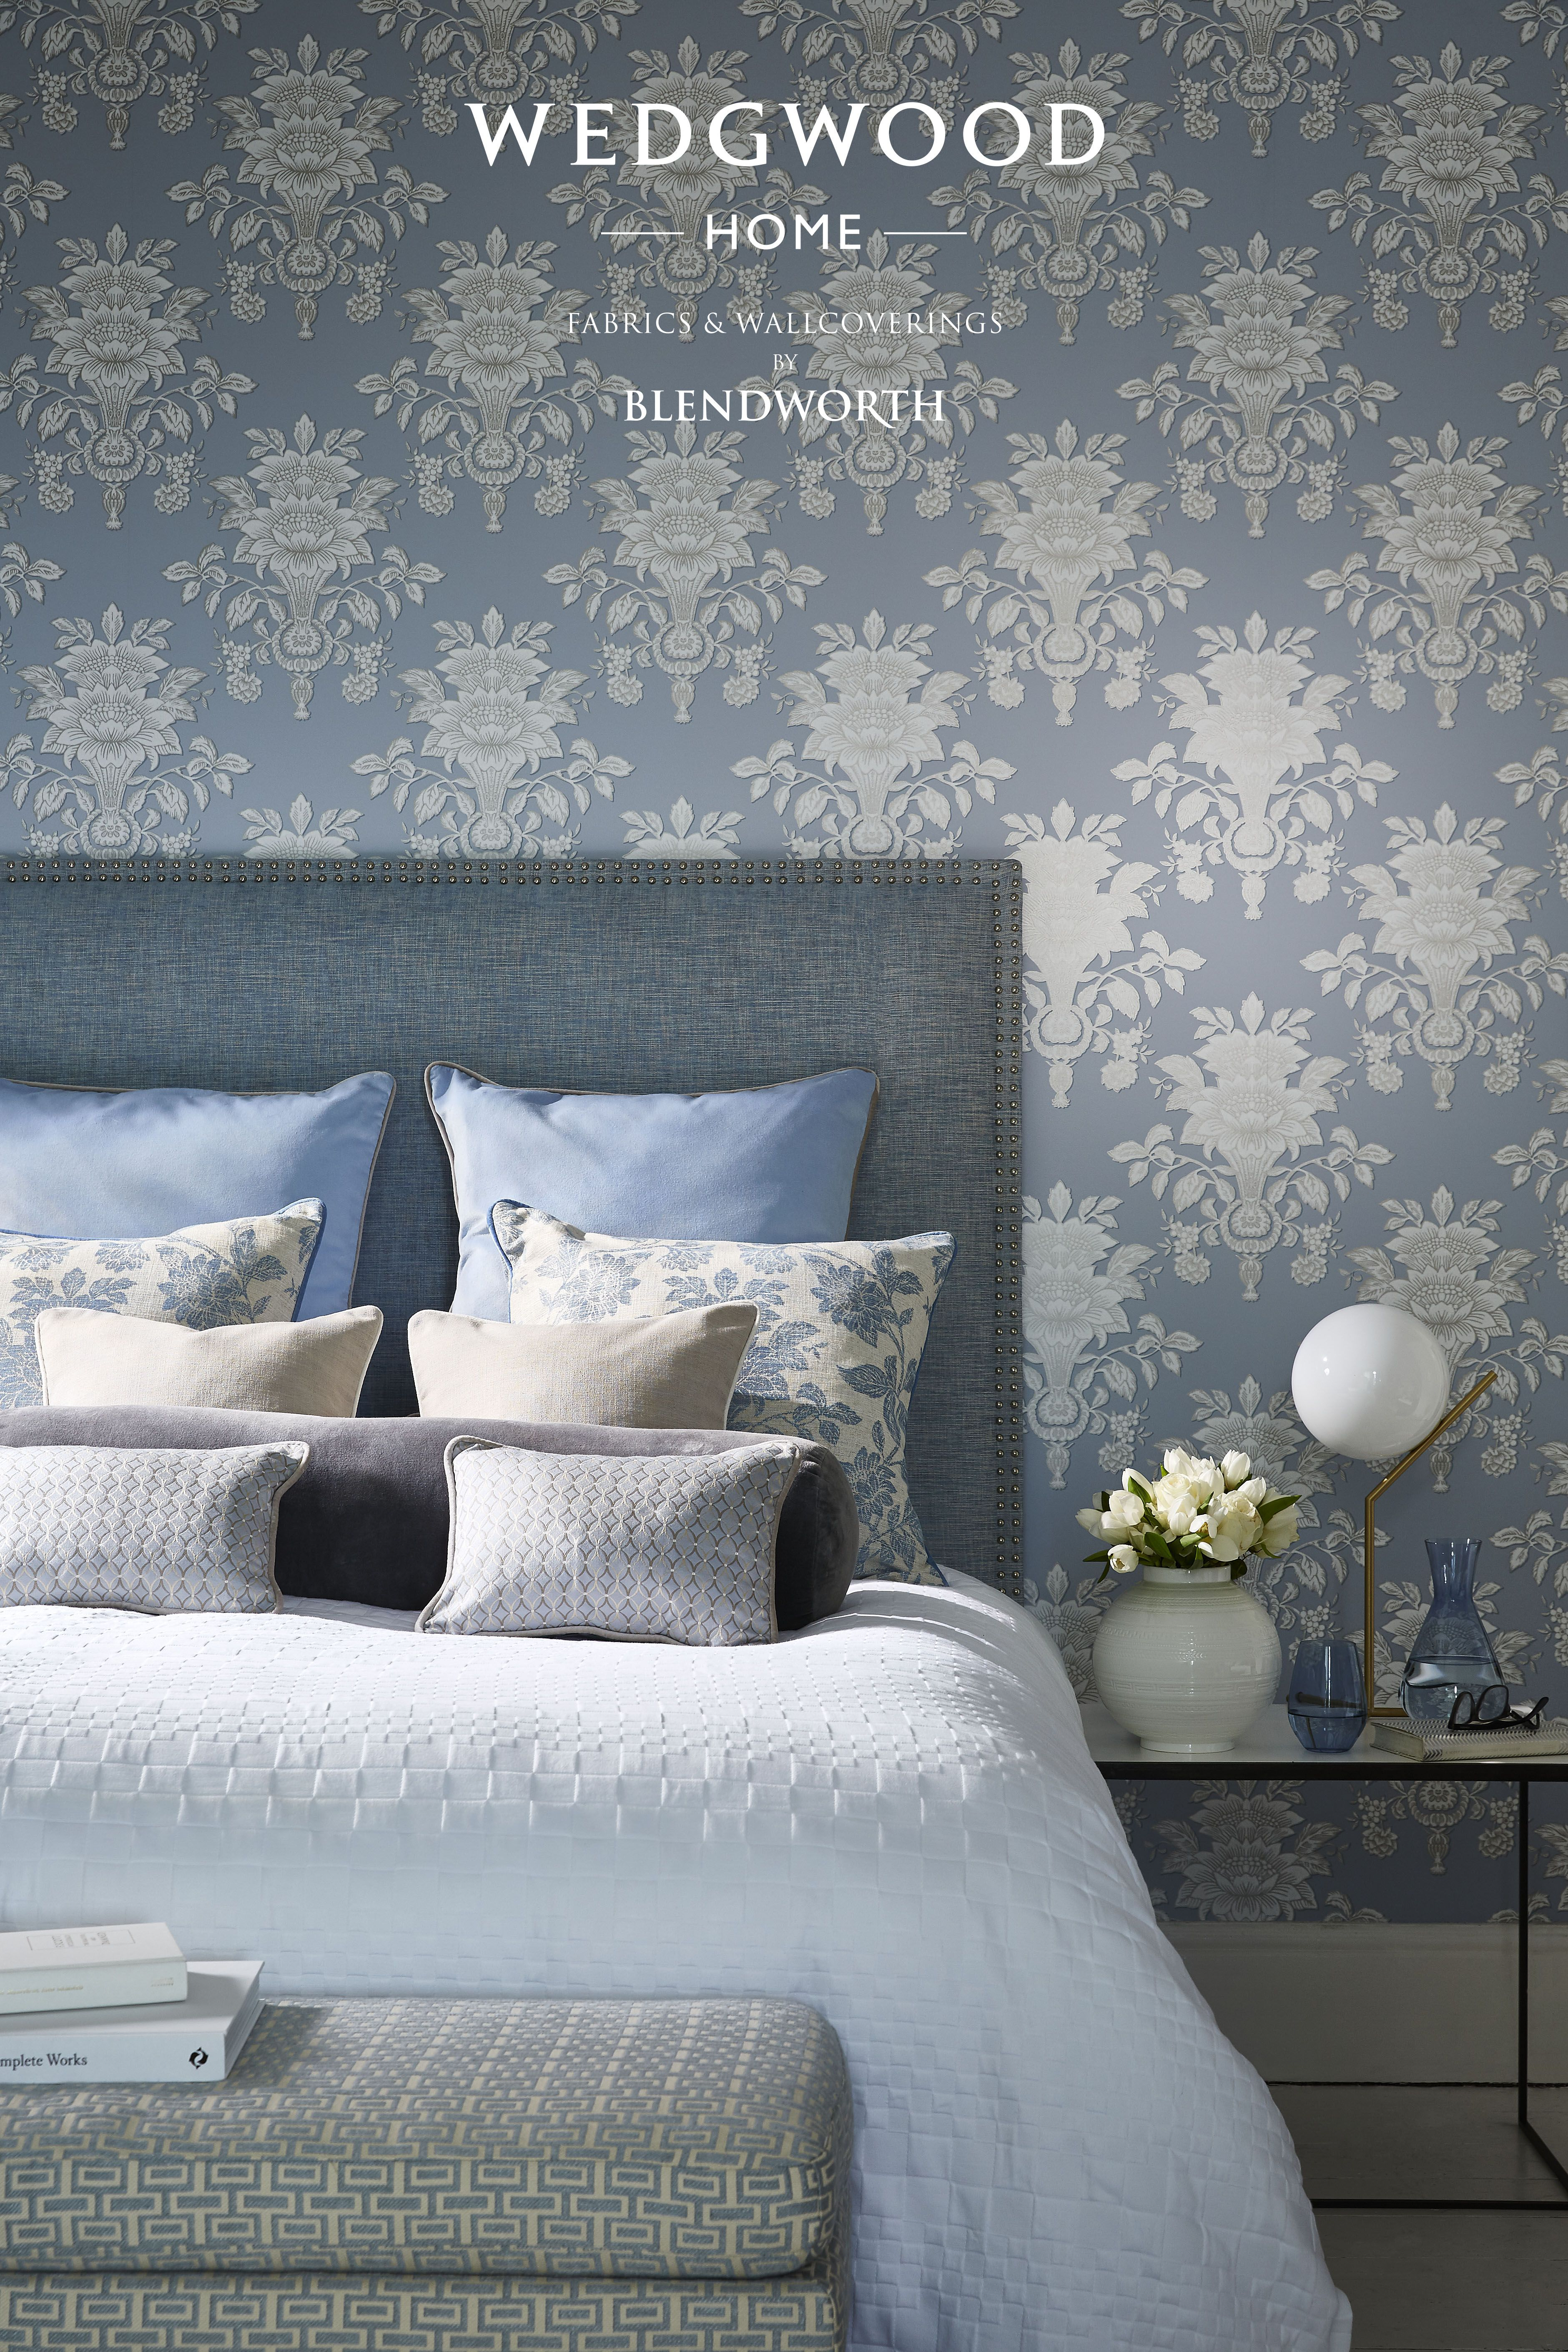 Wedgwood Home Fabrics & Wallcoverings Vol.1 Collection by Blendworth ...